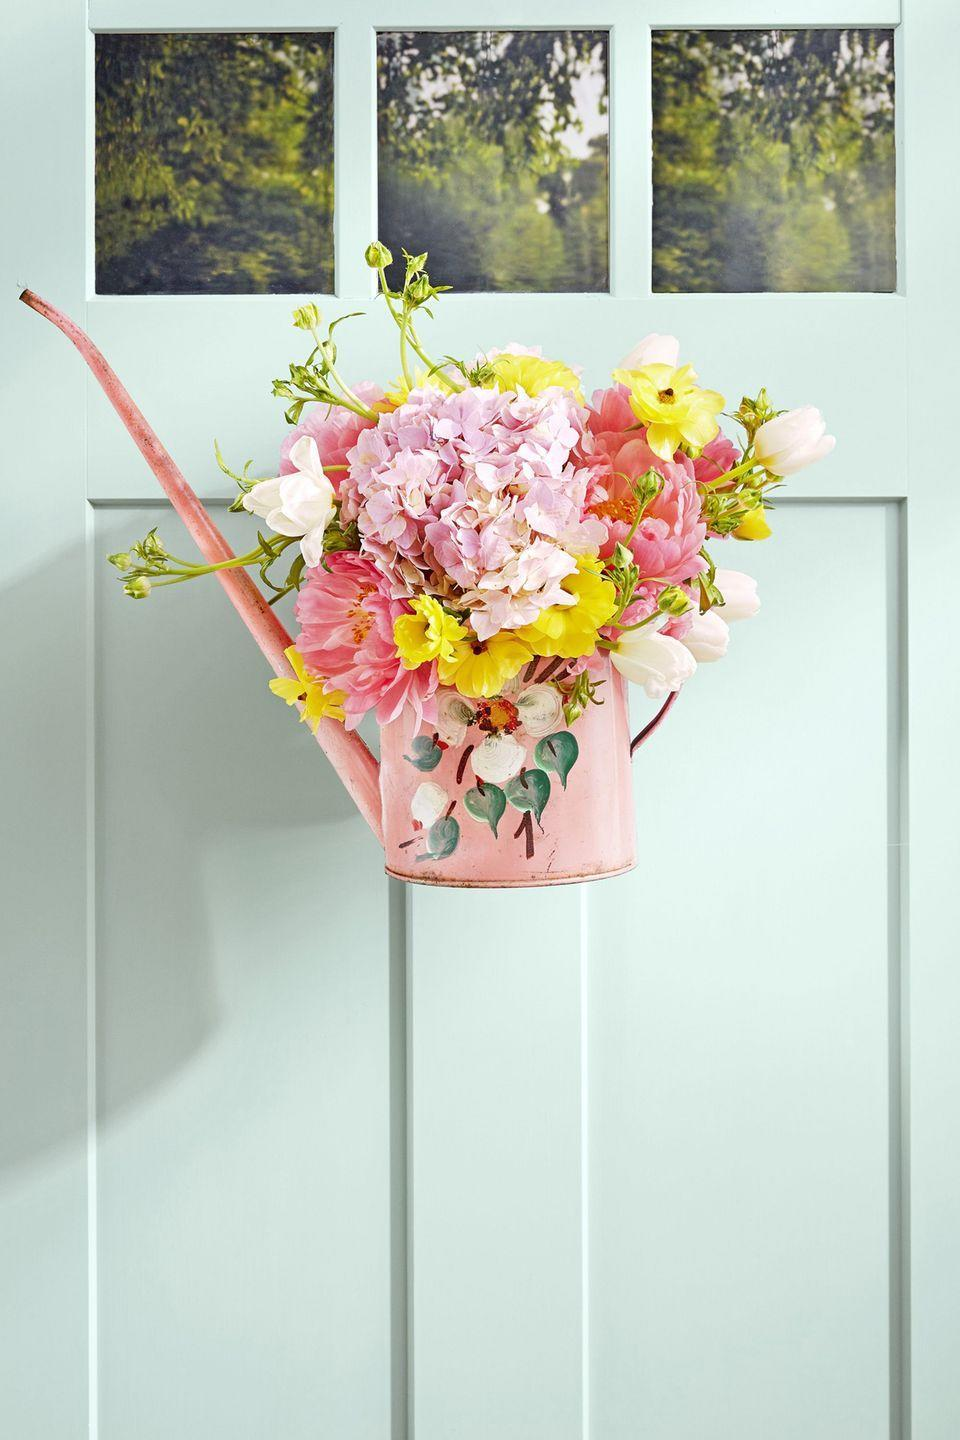 "<p>All you have to do to get this summer-ready front door look is fill the can with water and add a beautiful bouquet of flowers. Then just loop wire through the handle and hang up.</p><p><a class=""link rapid-noclick-resp"" href=""https://www.amazon.com/dp/B08DCQVLMM/ref=sbl_dpx_B08CDRFY7M_0?tag=syn-yahoo-20&ascsubtag=%5Bartid%7C10050.g.4395%5Bsrc%7Cyahoo-us"" rel=""nofollow noopener"" target=""_blank"" data-ylk=""slk:SHOP WATERING CANS"">SHOP WATERING CANS</a></p>"